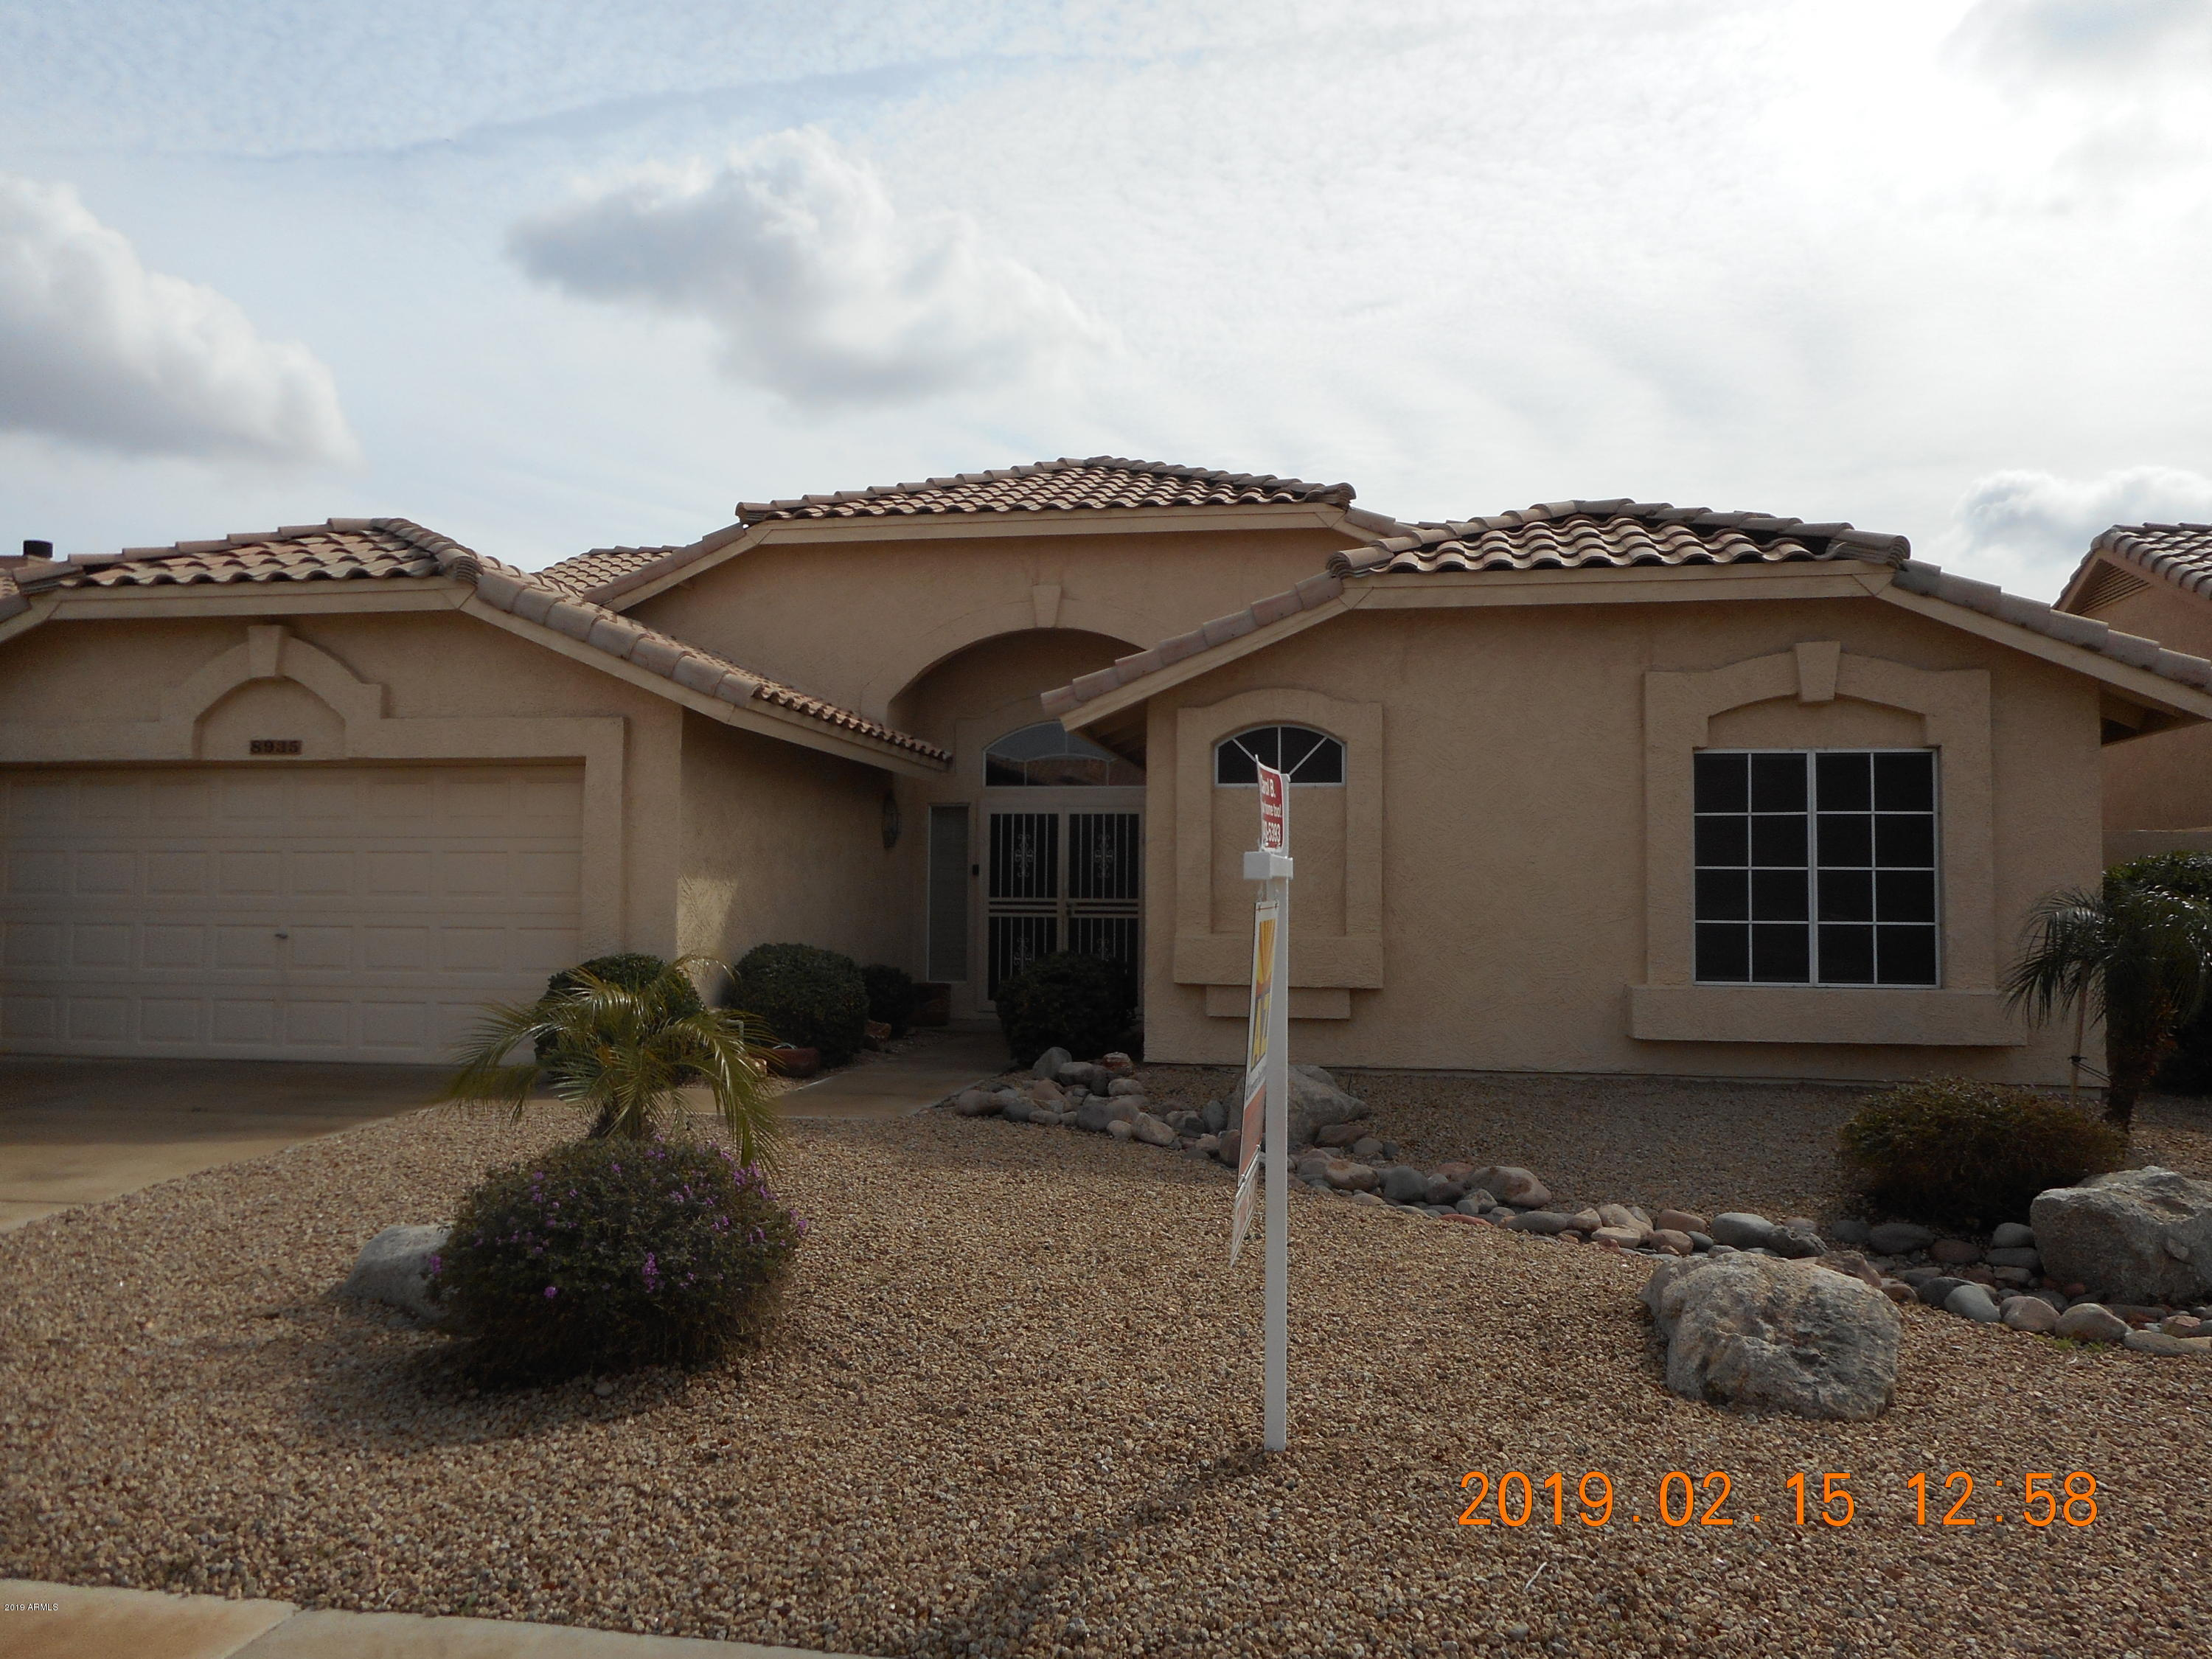 8935 W KERRY Lane, Peoria in Maricopa County, AZ 85382 Home for Sale